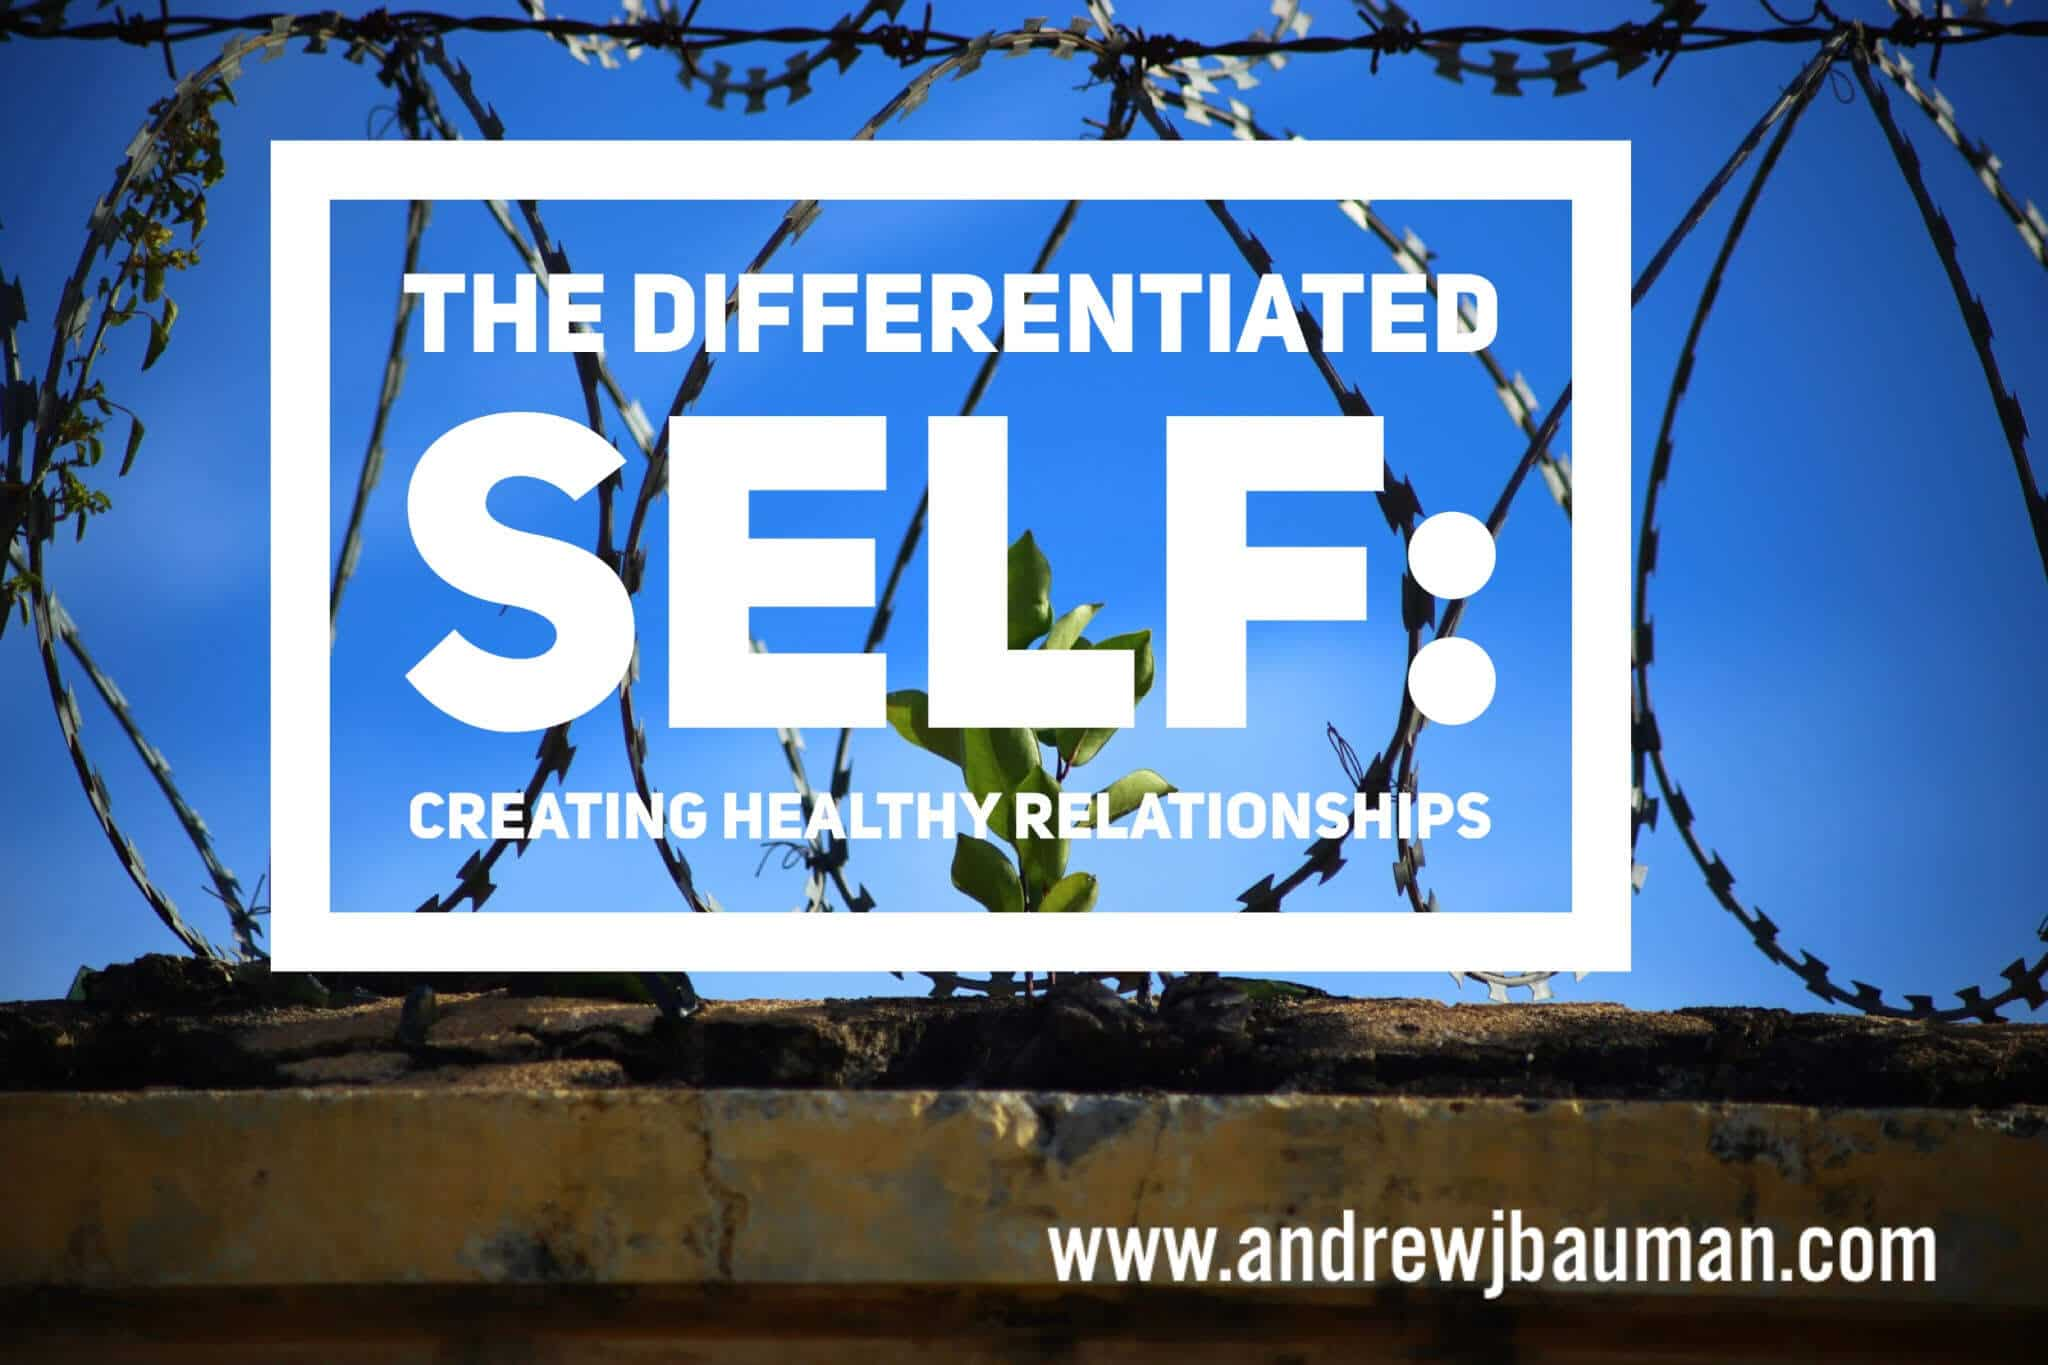 The Differentiated Self: creating healthy relationship